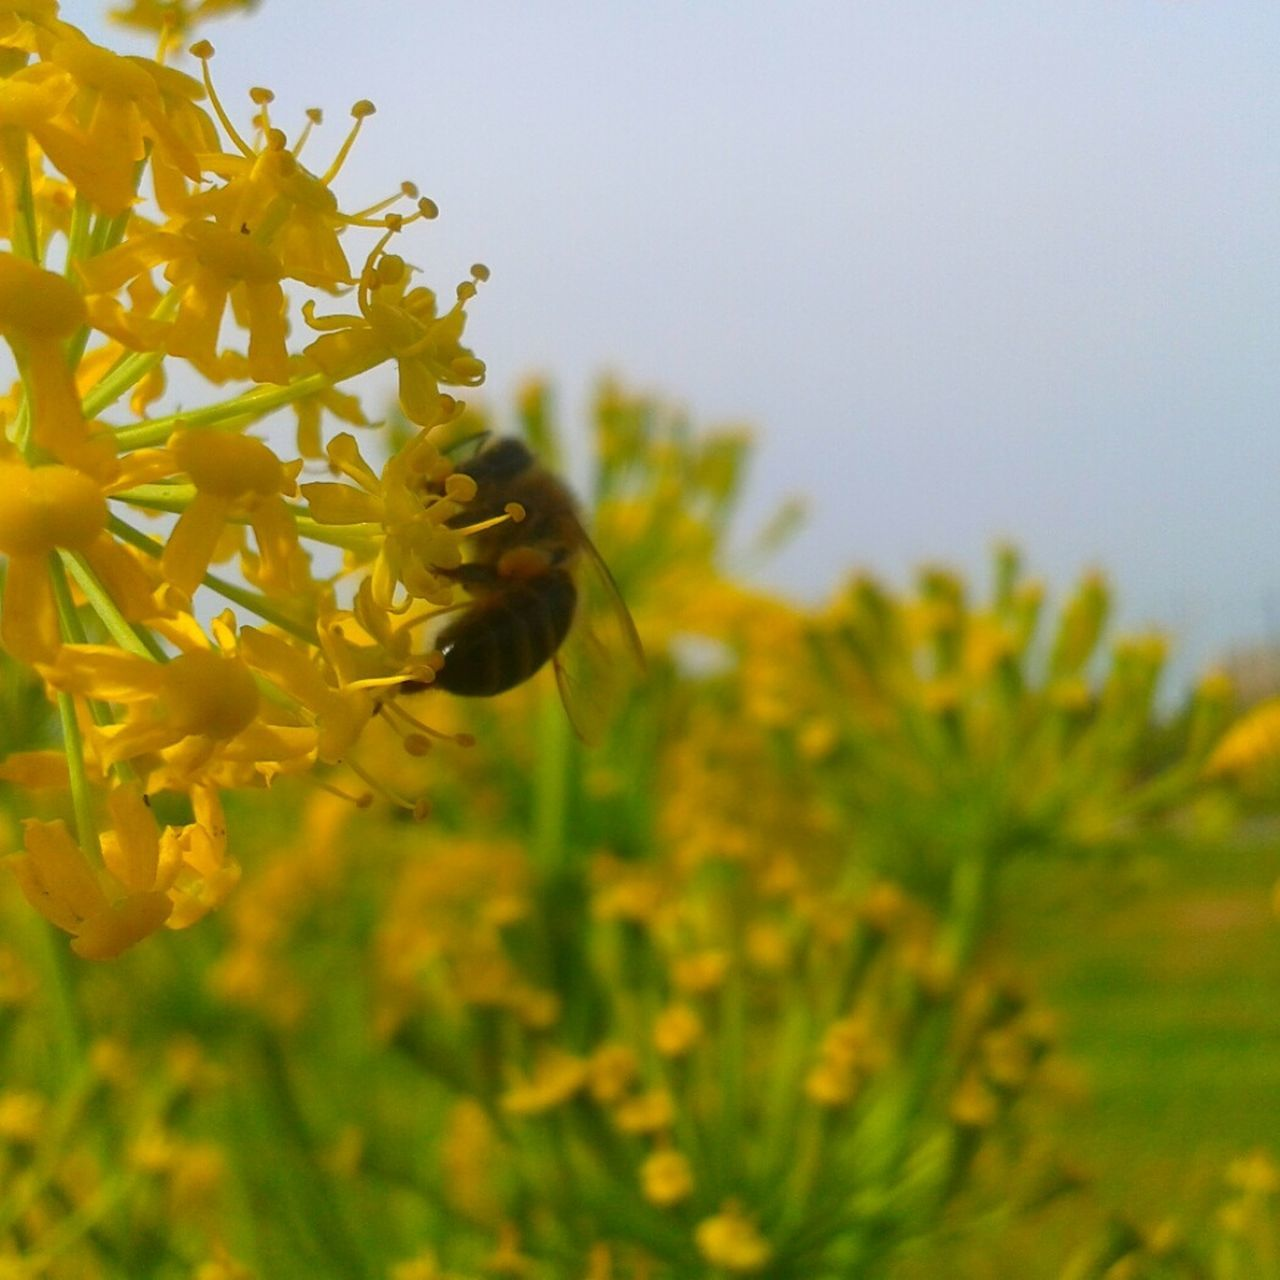 flower, growth, plant, nature, fragility, insect, petal, beauty in nature, yellow, one animal, freshness, animals in the wild, no people, animal themes, selective focus, outdoors, buzzing, bee, day, blooming, pollination, close-up, flower head, clear sky